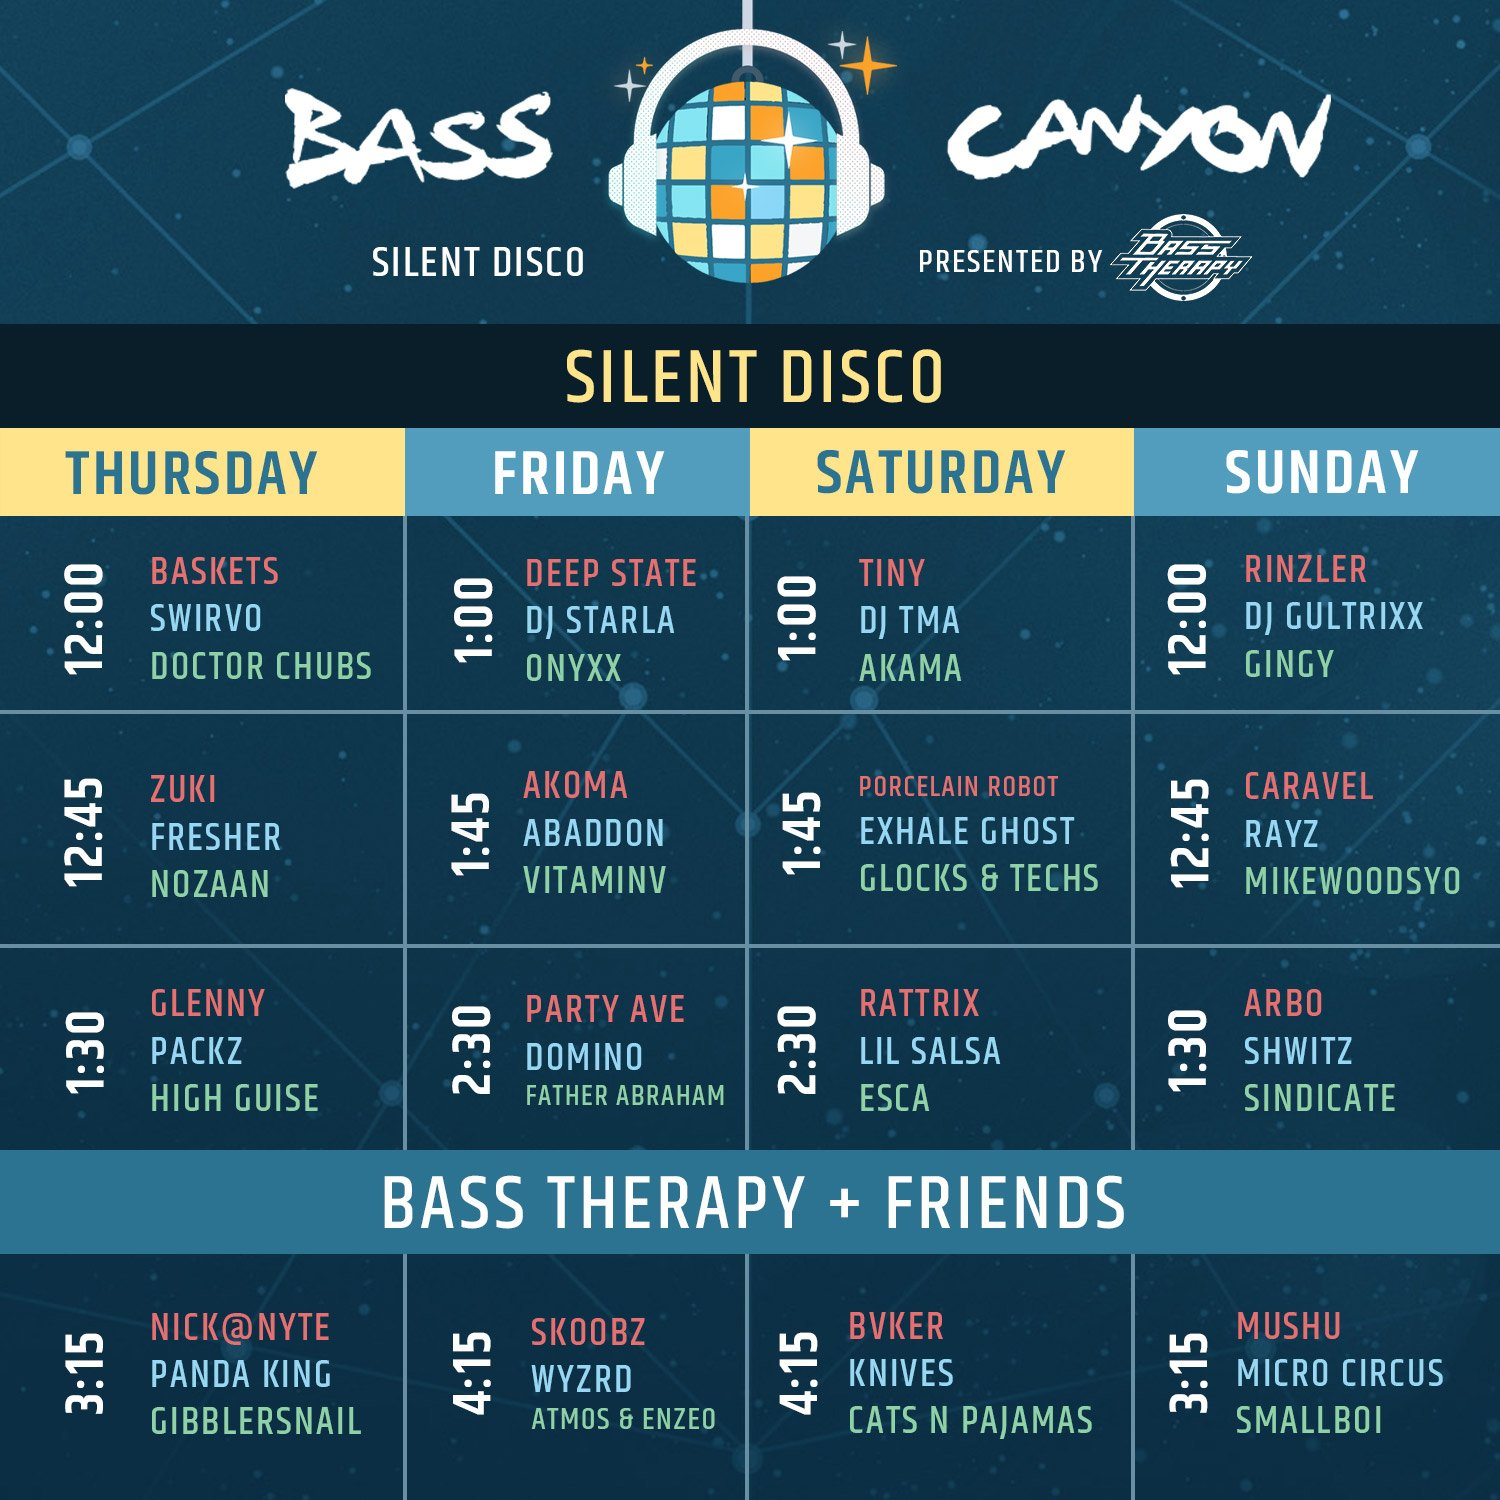 The Bass Canyon Silent Disco schedule